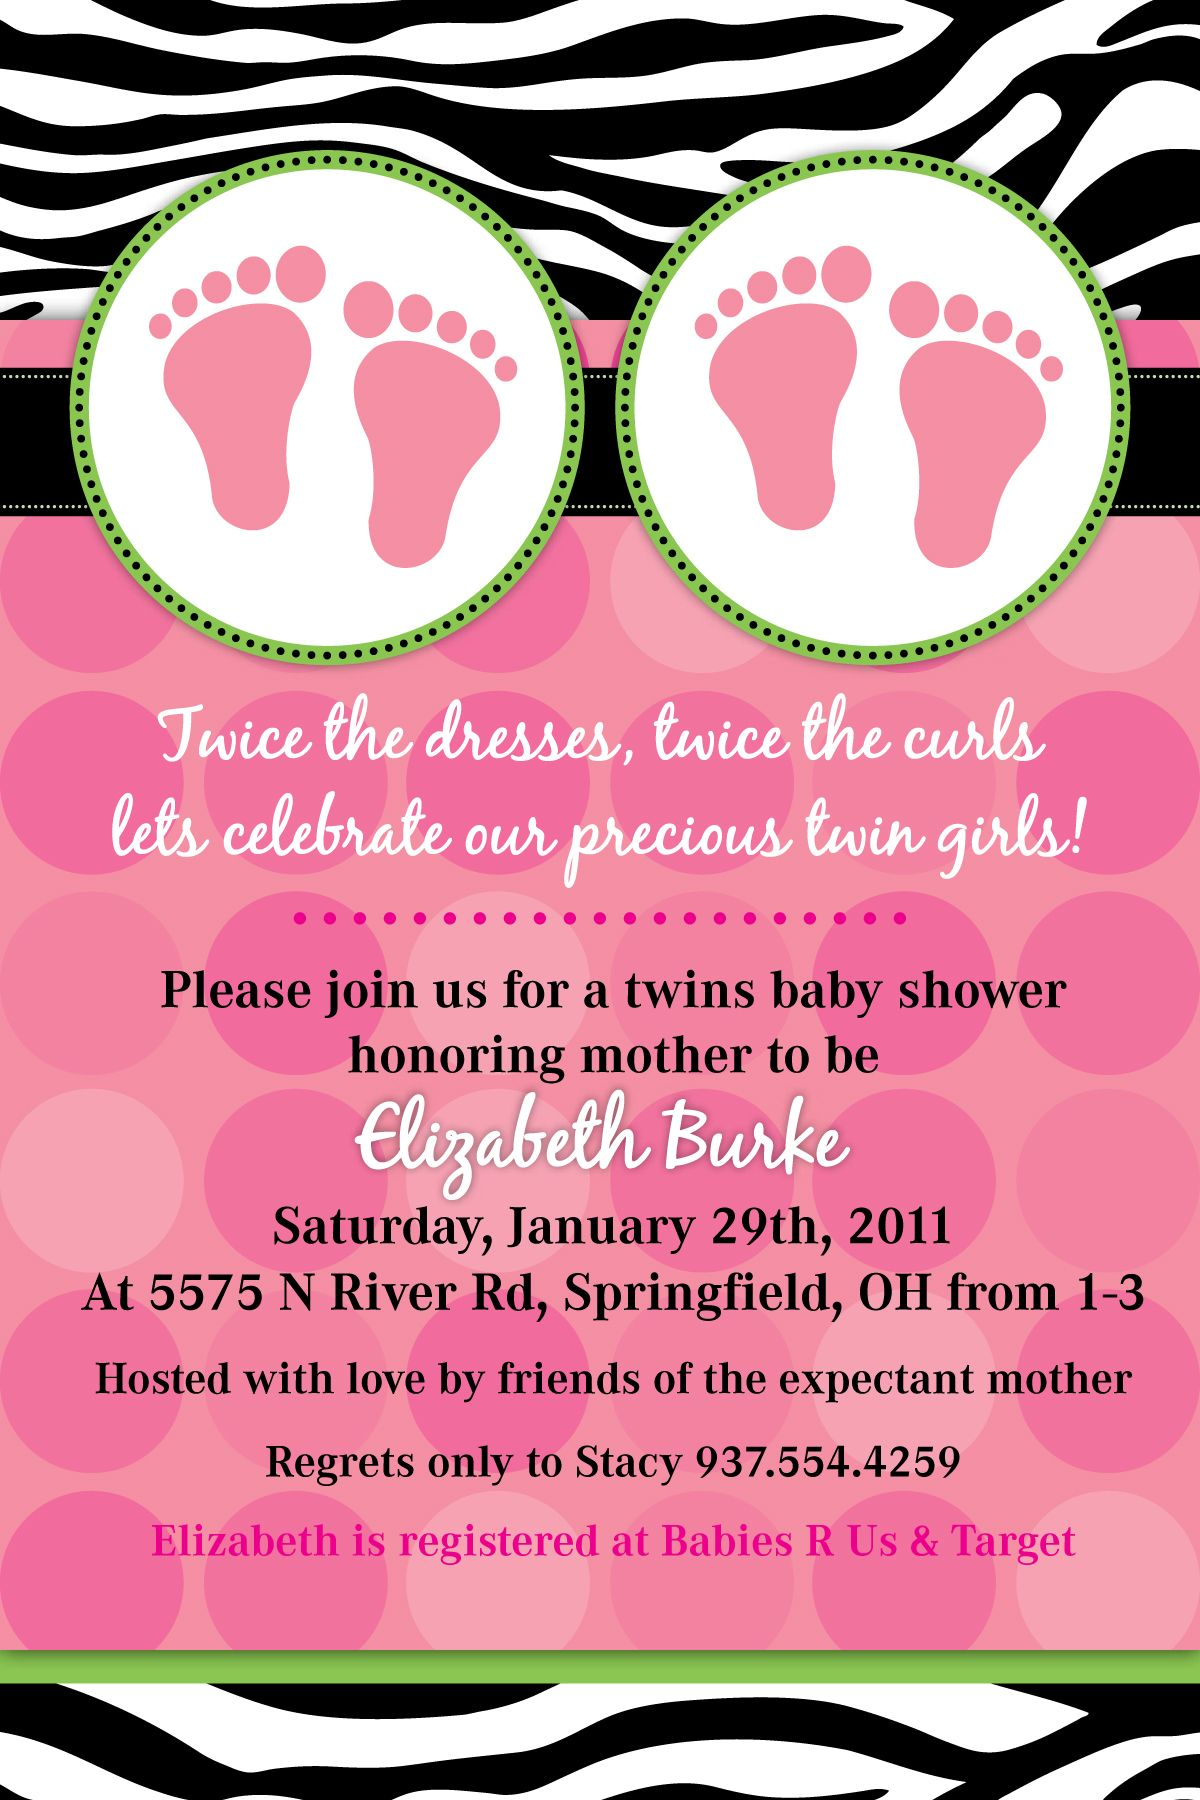 Baby Shower Invites For Twin Girls Twins Party Invites In 2018